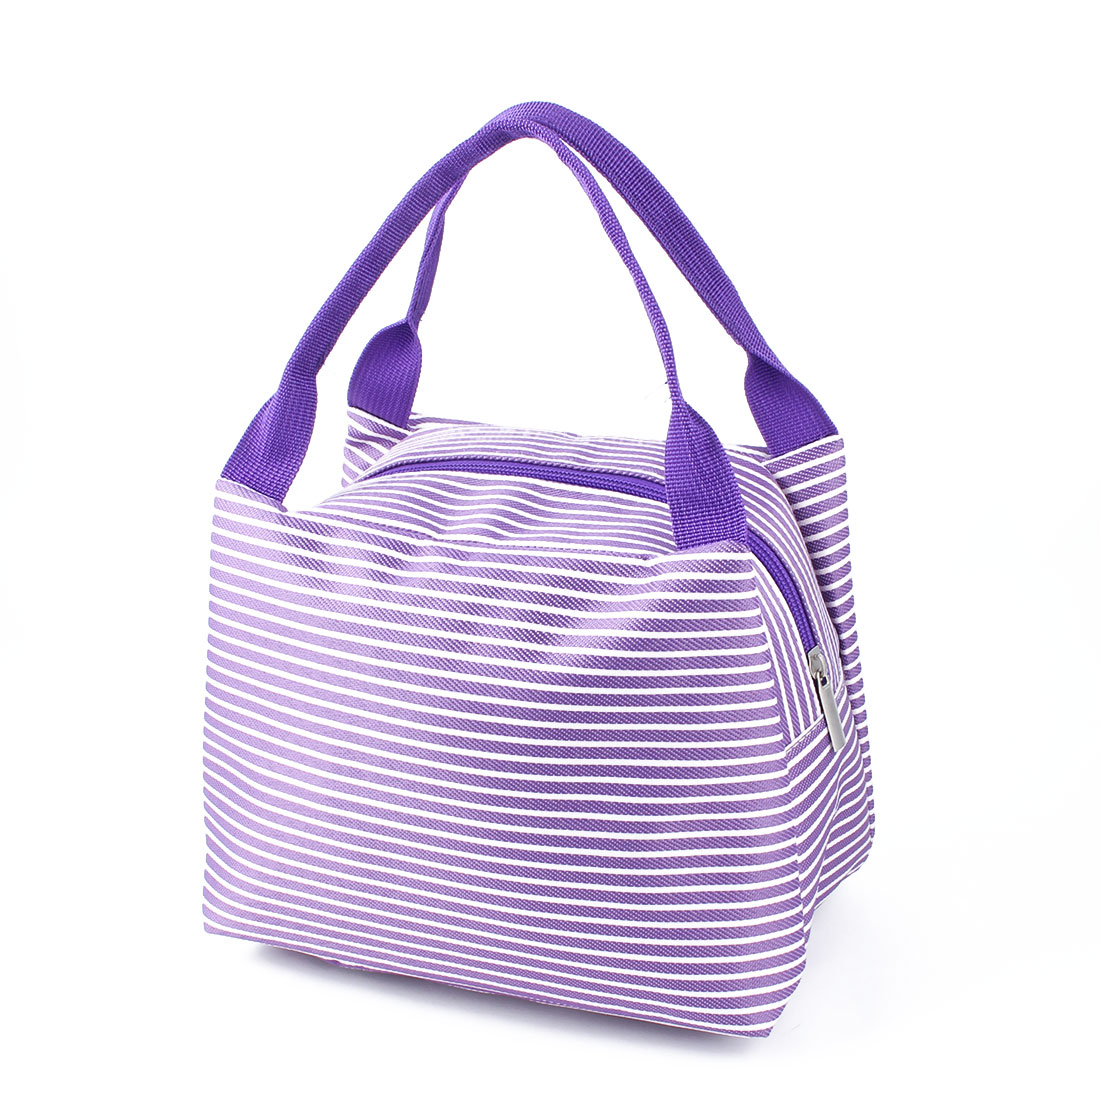 Outdoor Stripes Zipper Insulated Thermal Cooler Lunch Bag Picnic Carry Tote Container Purple